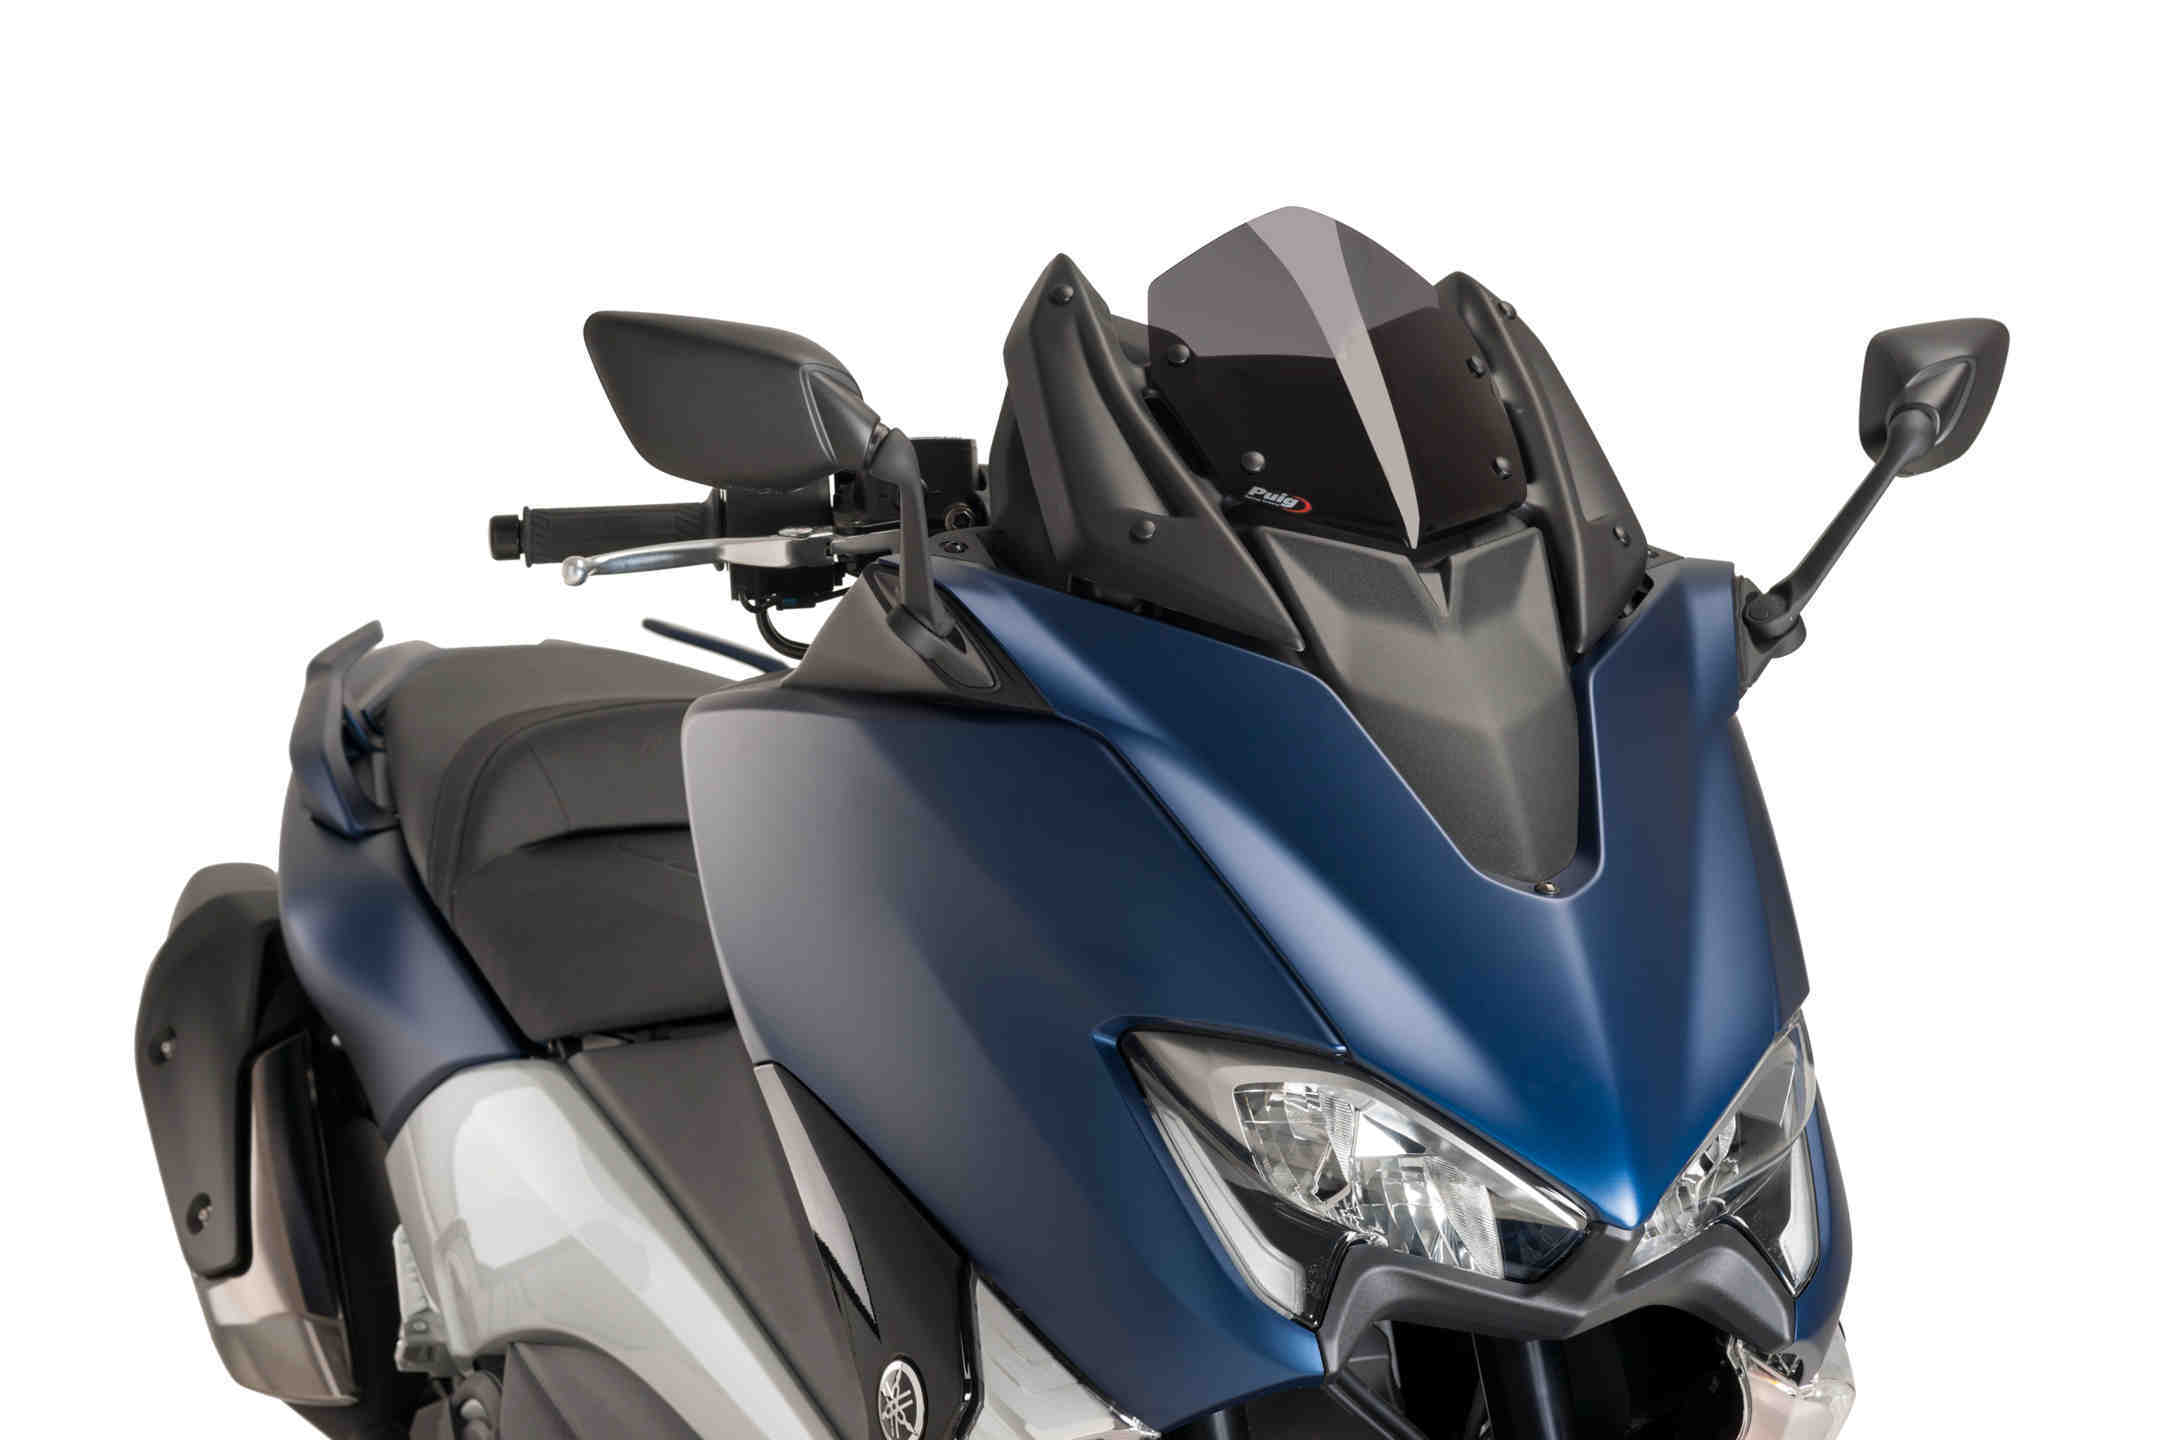 Cúpula Puig V-Tech Line Supersport para Yamaha T-Max 530 SX / DX 2017>